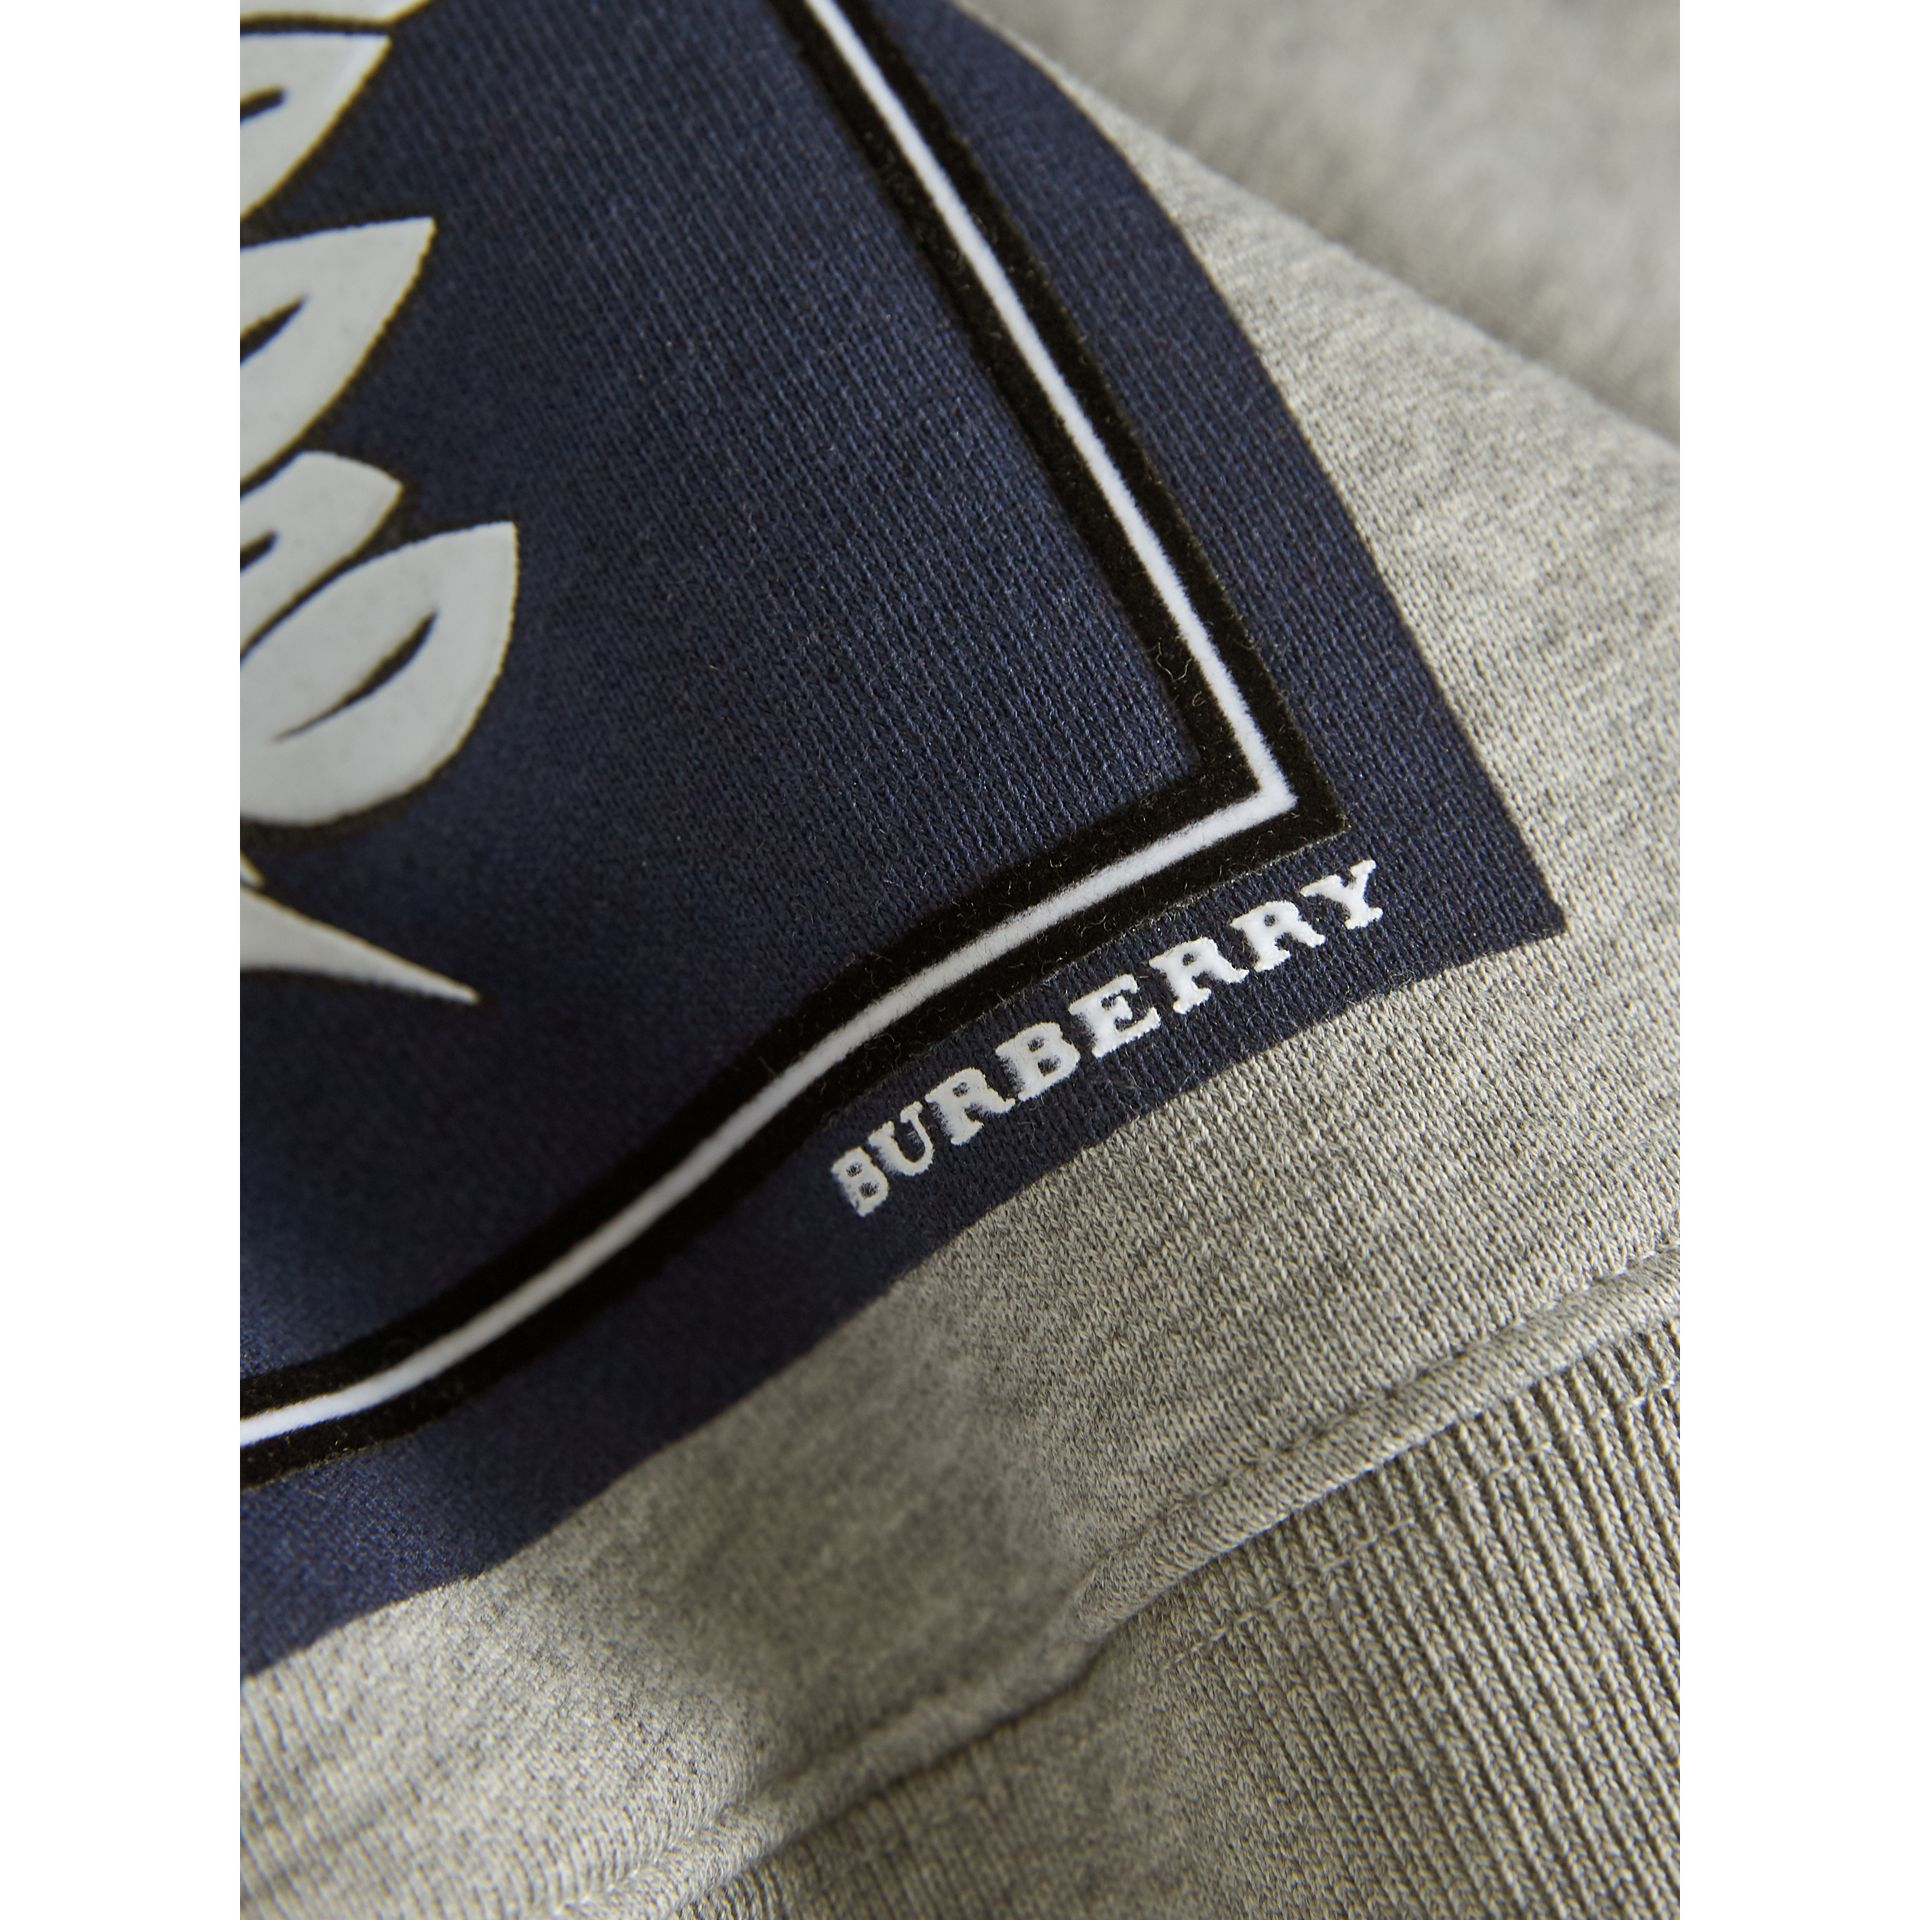 Beasts Print Cotton Sweatshirt in Deep Blue | Burberry Australia - gallery image 2